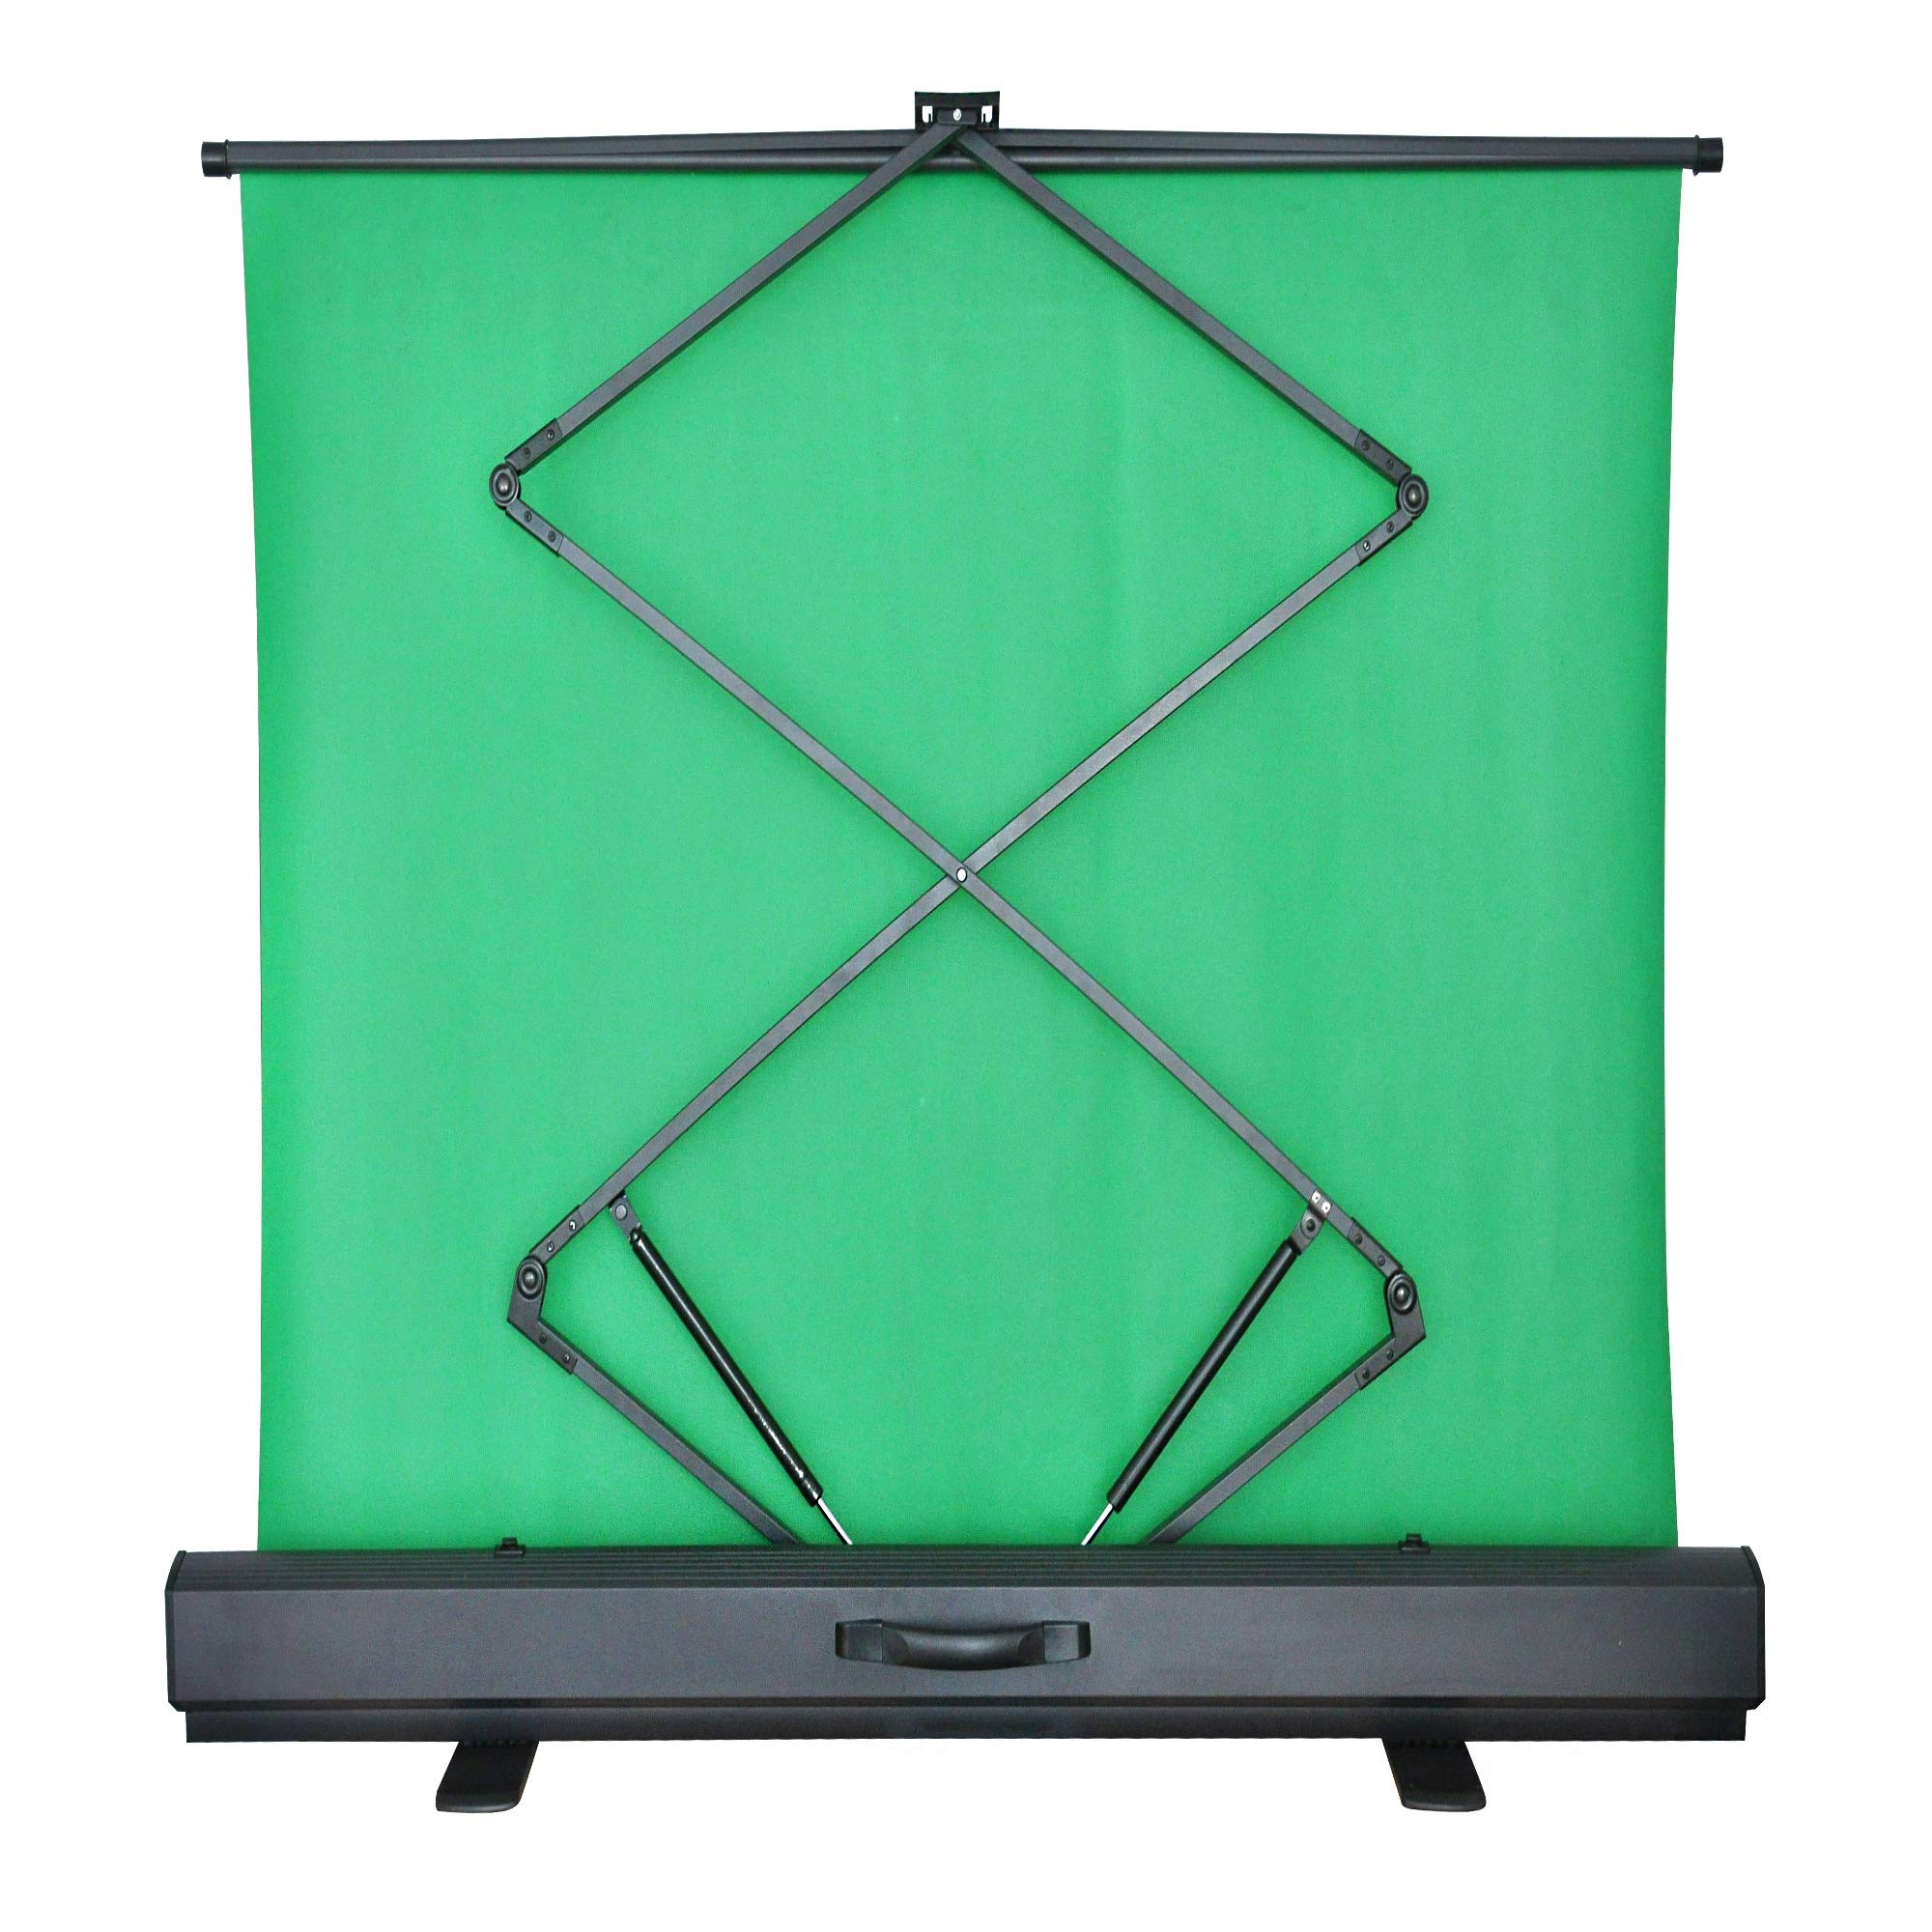 MAXTEX Green Screen, Portable Pull Up Wrinkle-Resistant Greenscreen Background Pull Up Backdrops Green Screen Backdrop Setup Auto-Locking Frame, Solid Safety Aluminium Base by MAXTEX (Image #2)